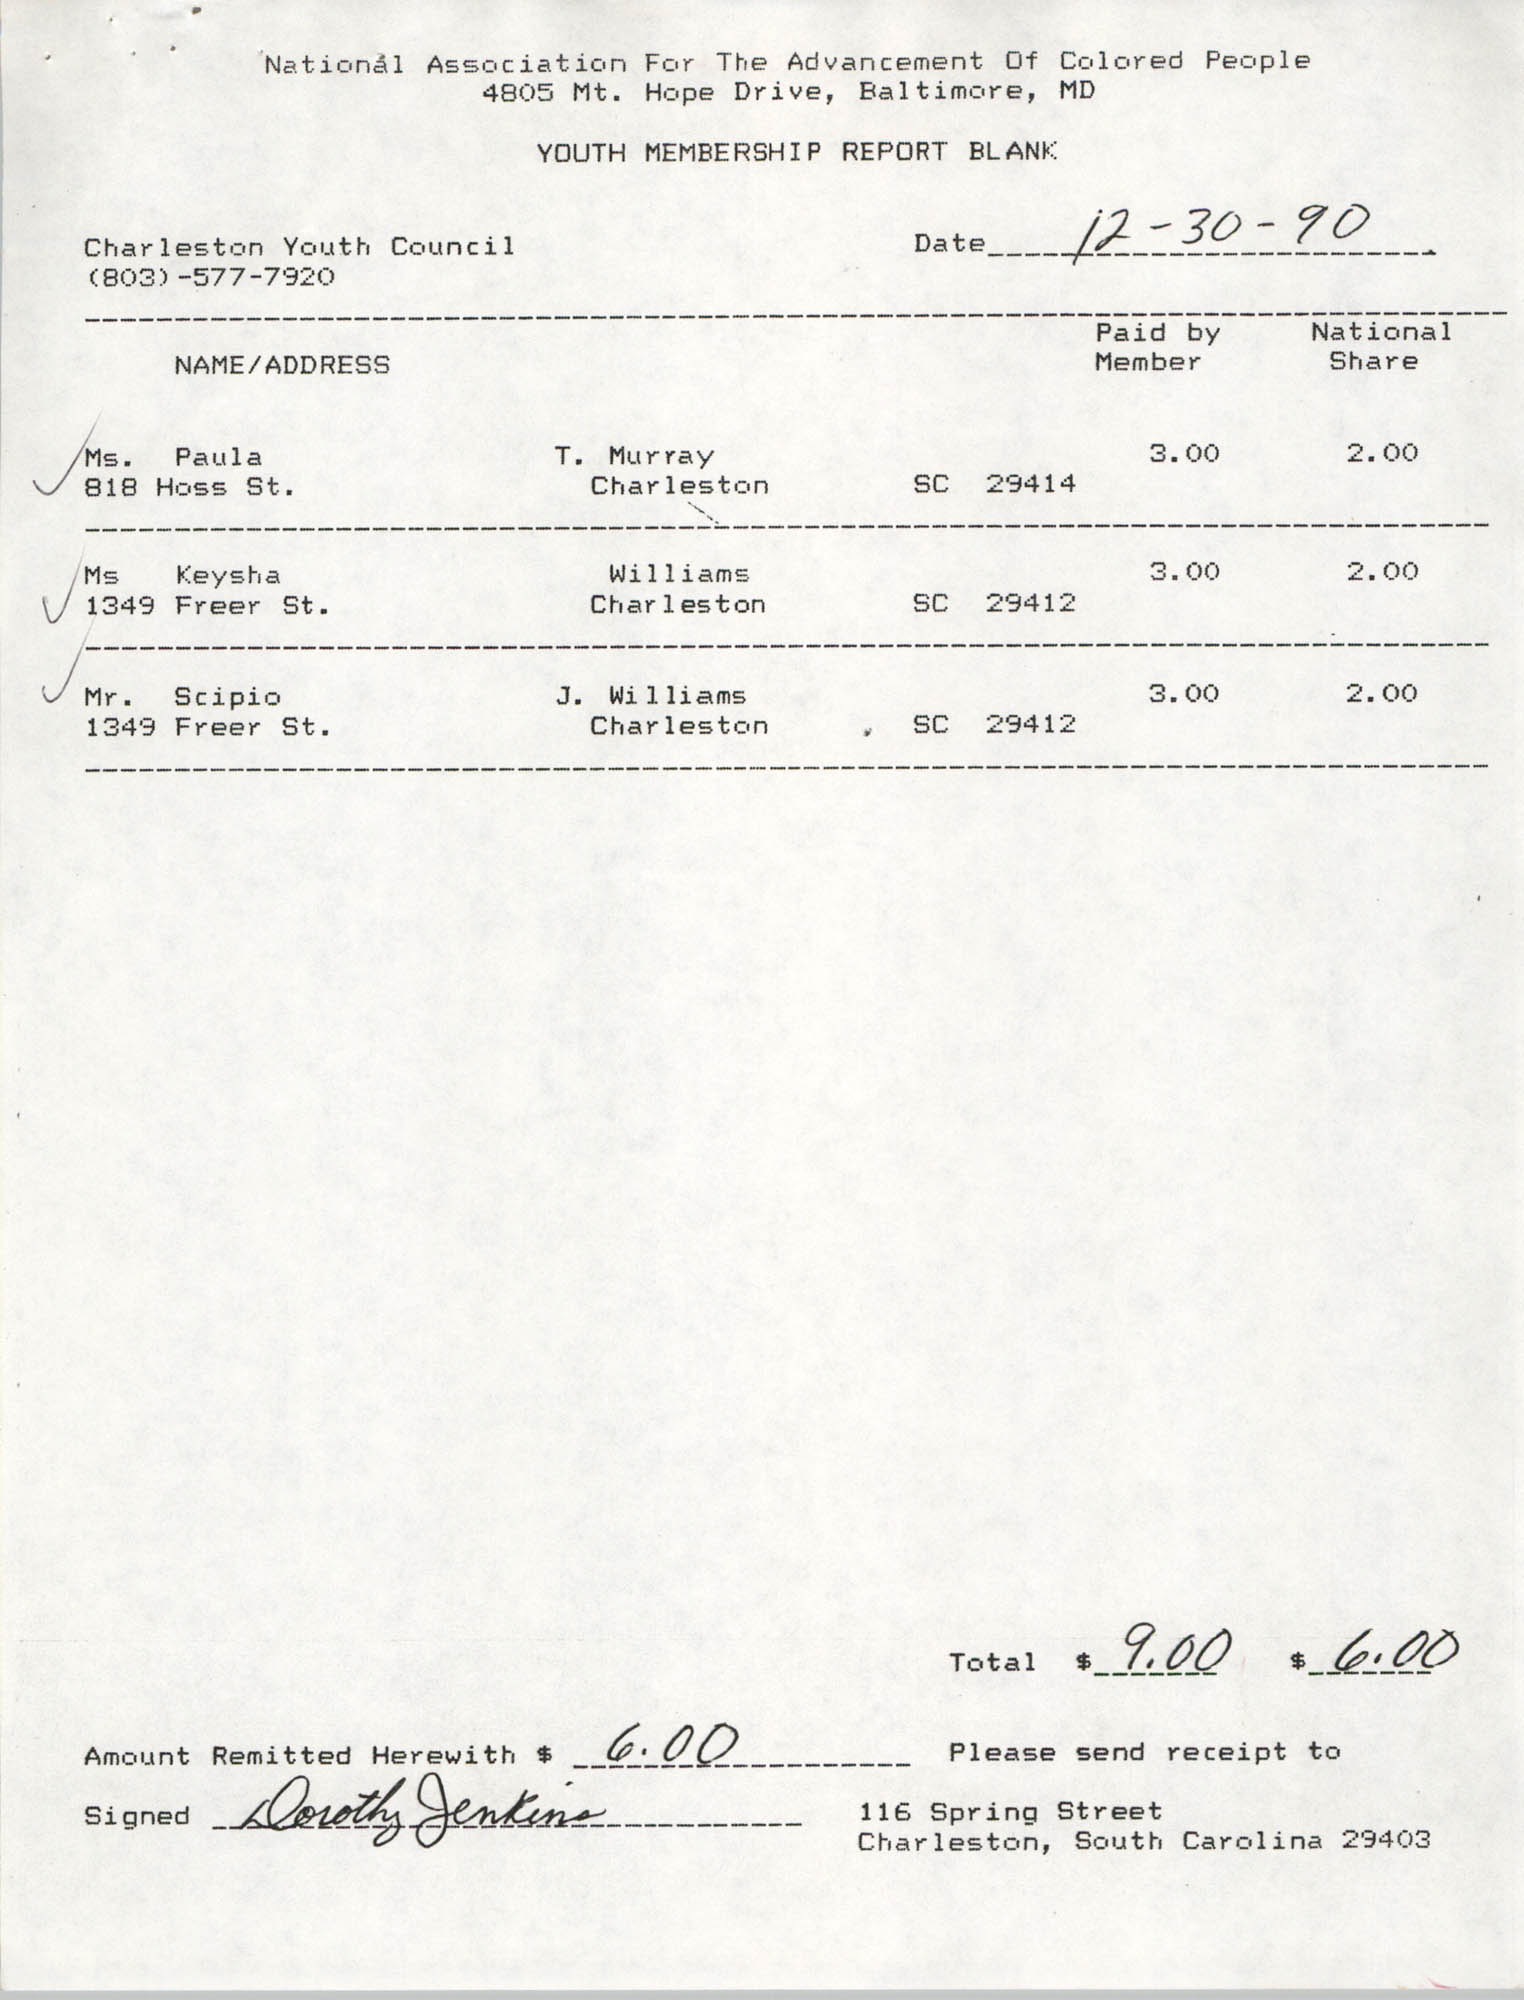 Youth Membership Report Blank, Charleston Youth Council, NAACP, December 30, 1990